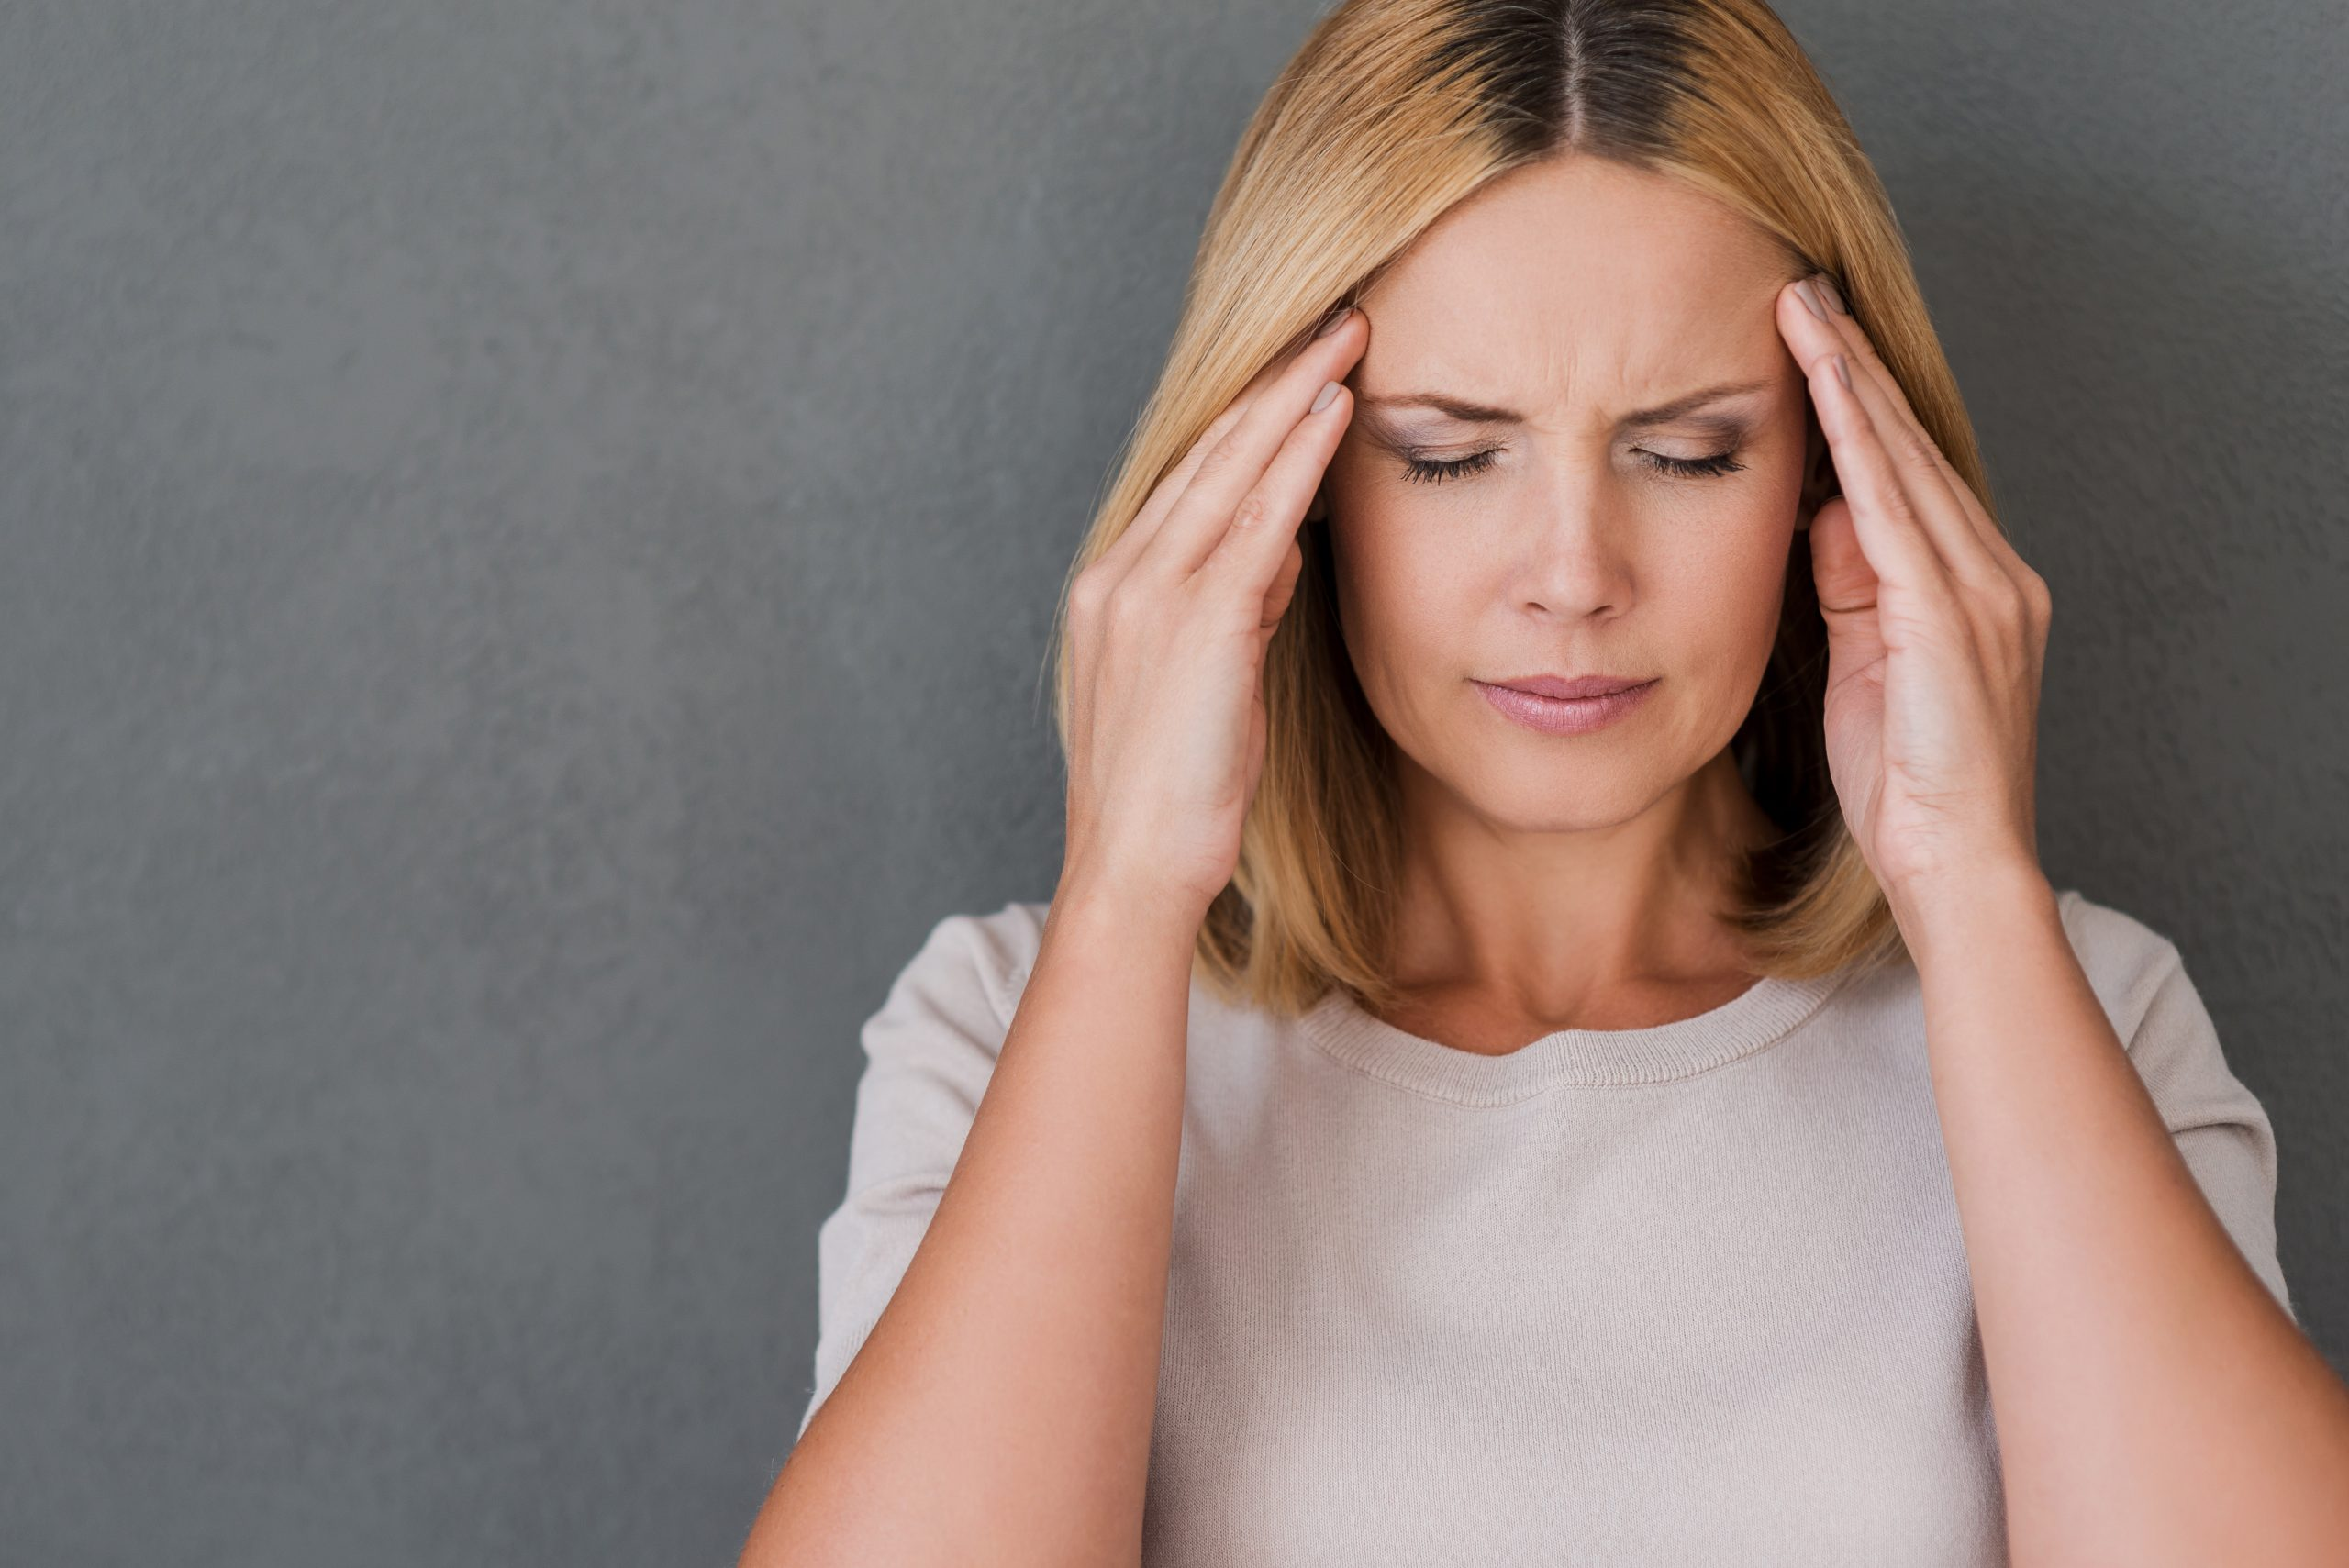 I need some painkillers. Depressed mature woman touching forehead and keeping eyes closed while standing against grey background